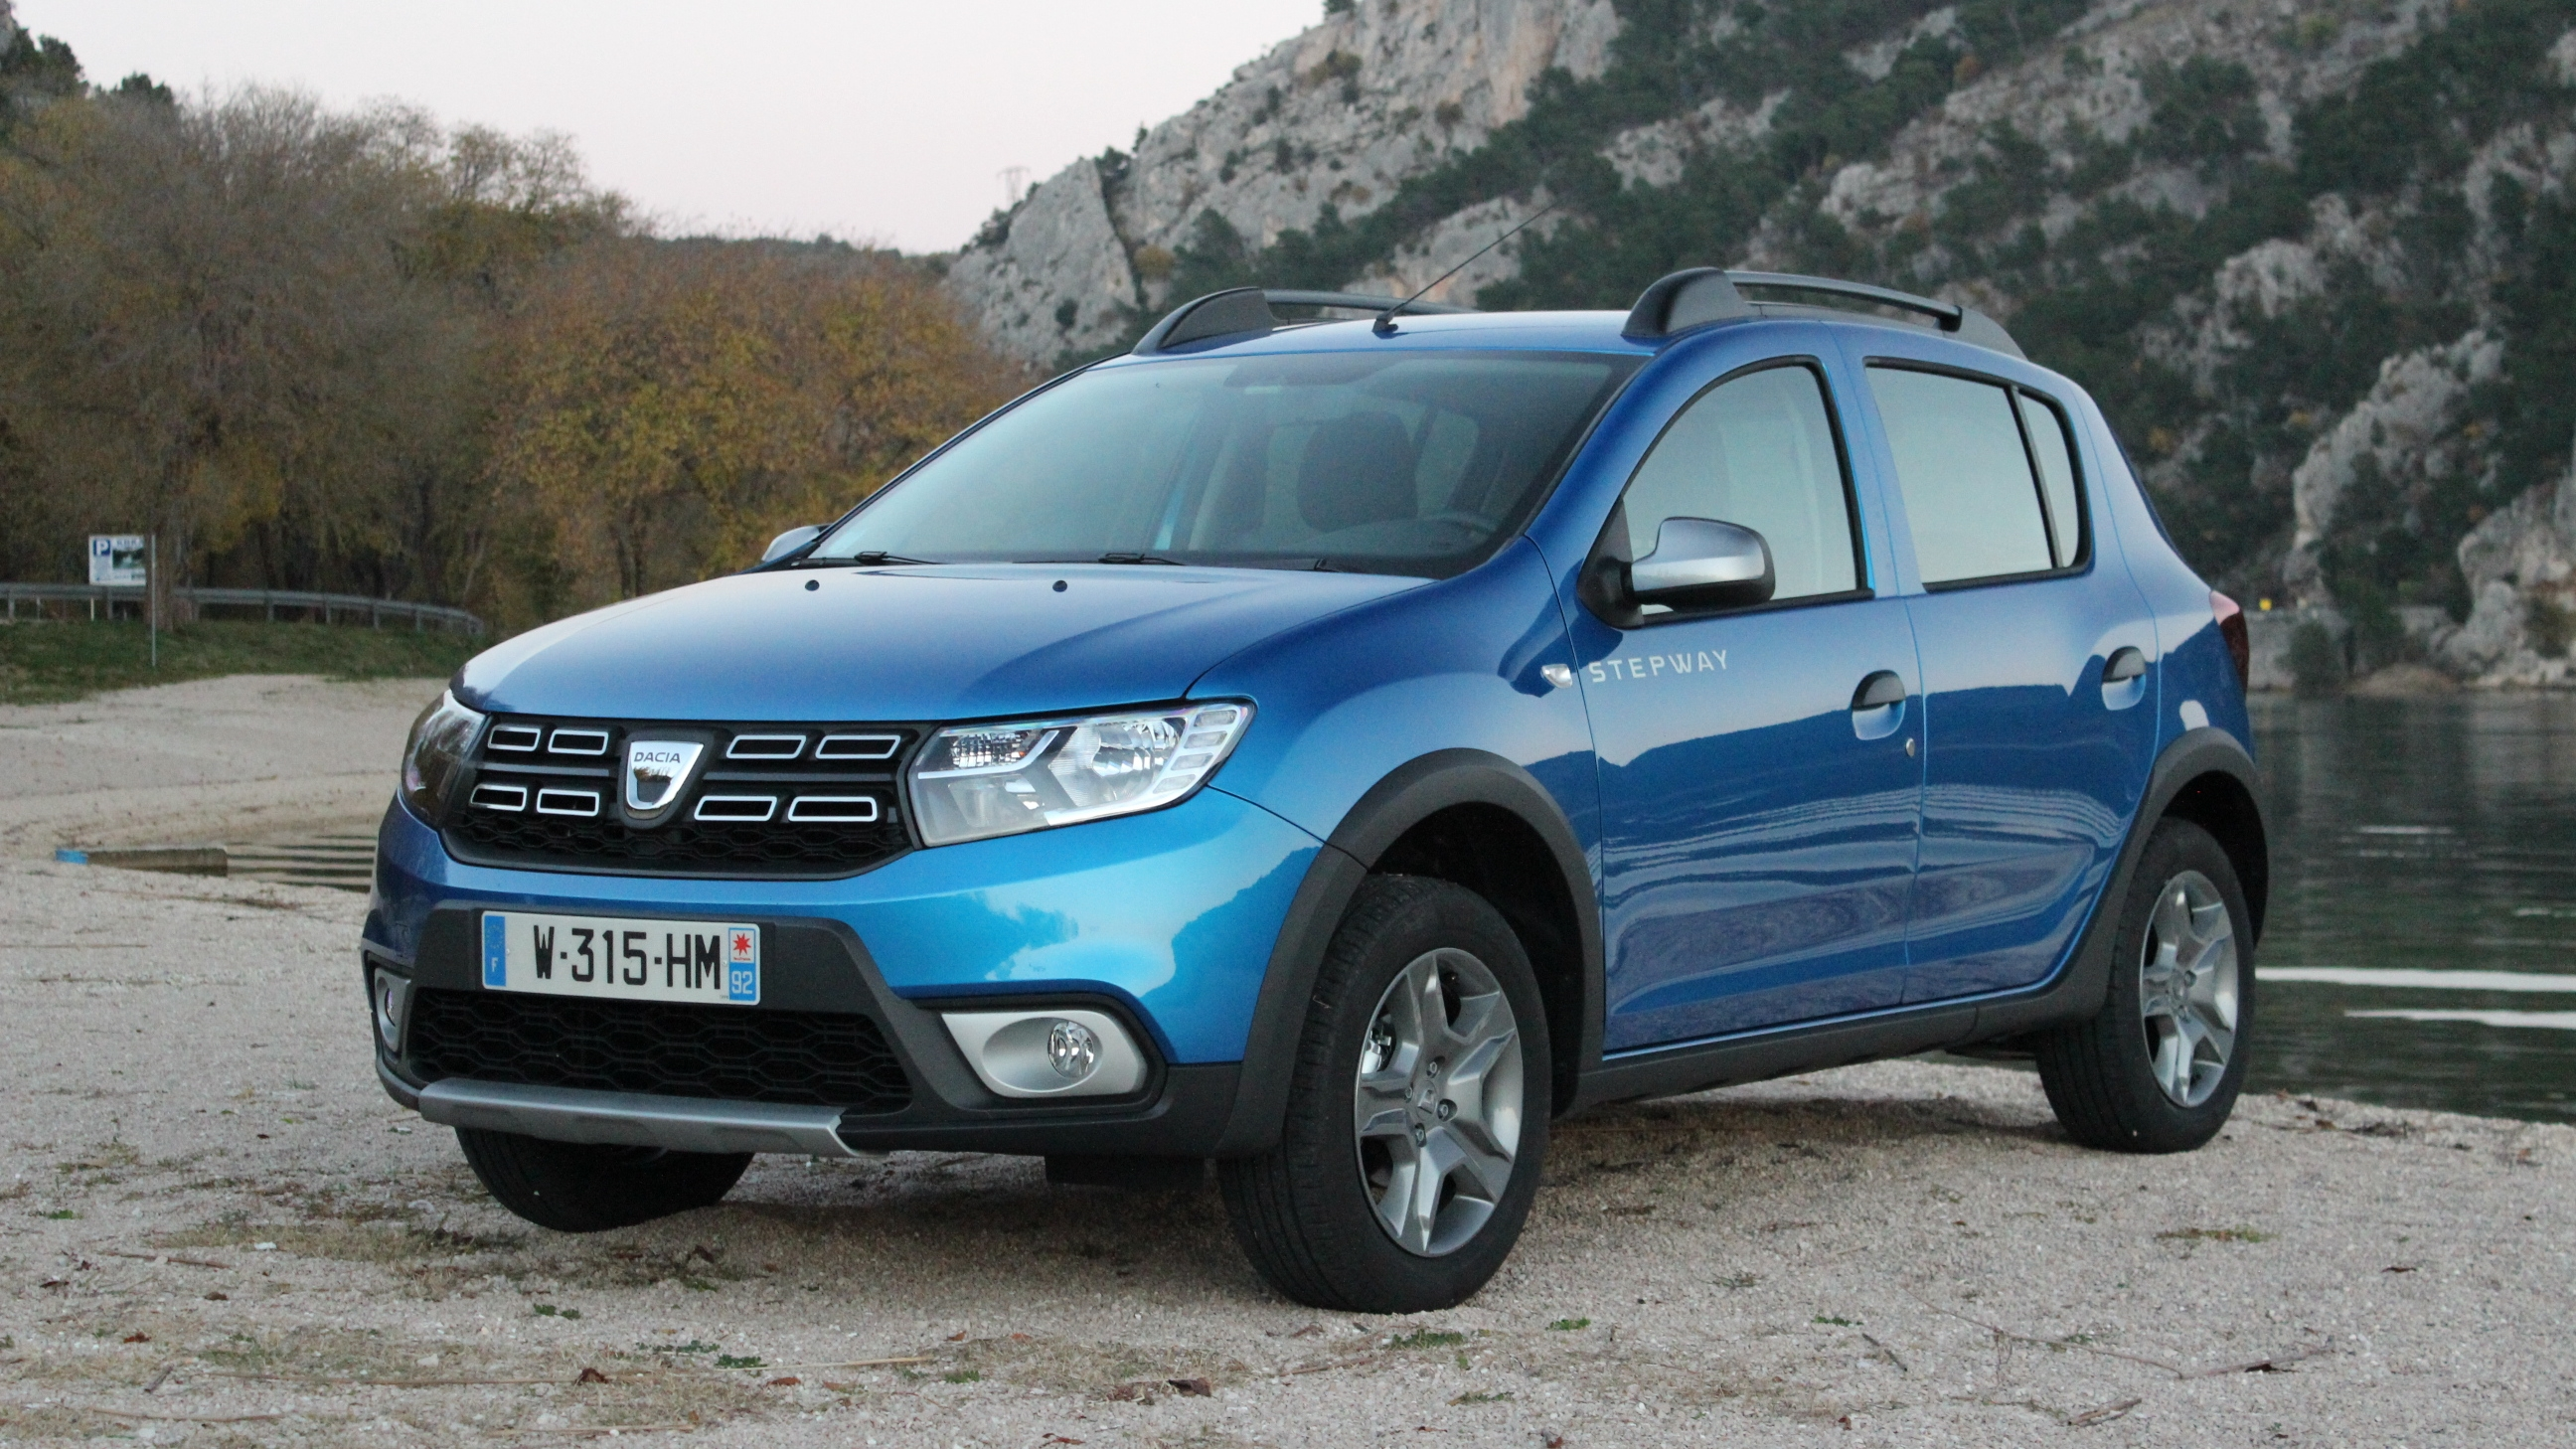 dacia duster prix 4x4 dacia duster prix photo de voiture. Black Bedroom Furniture Sets. Home Design Ideas